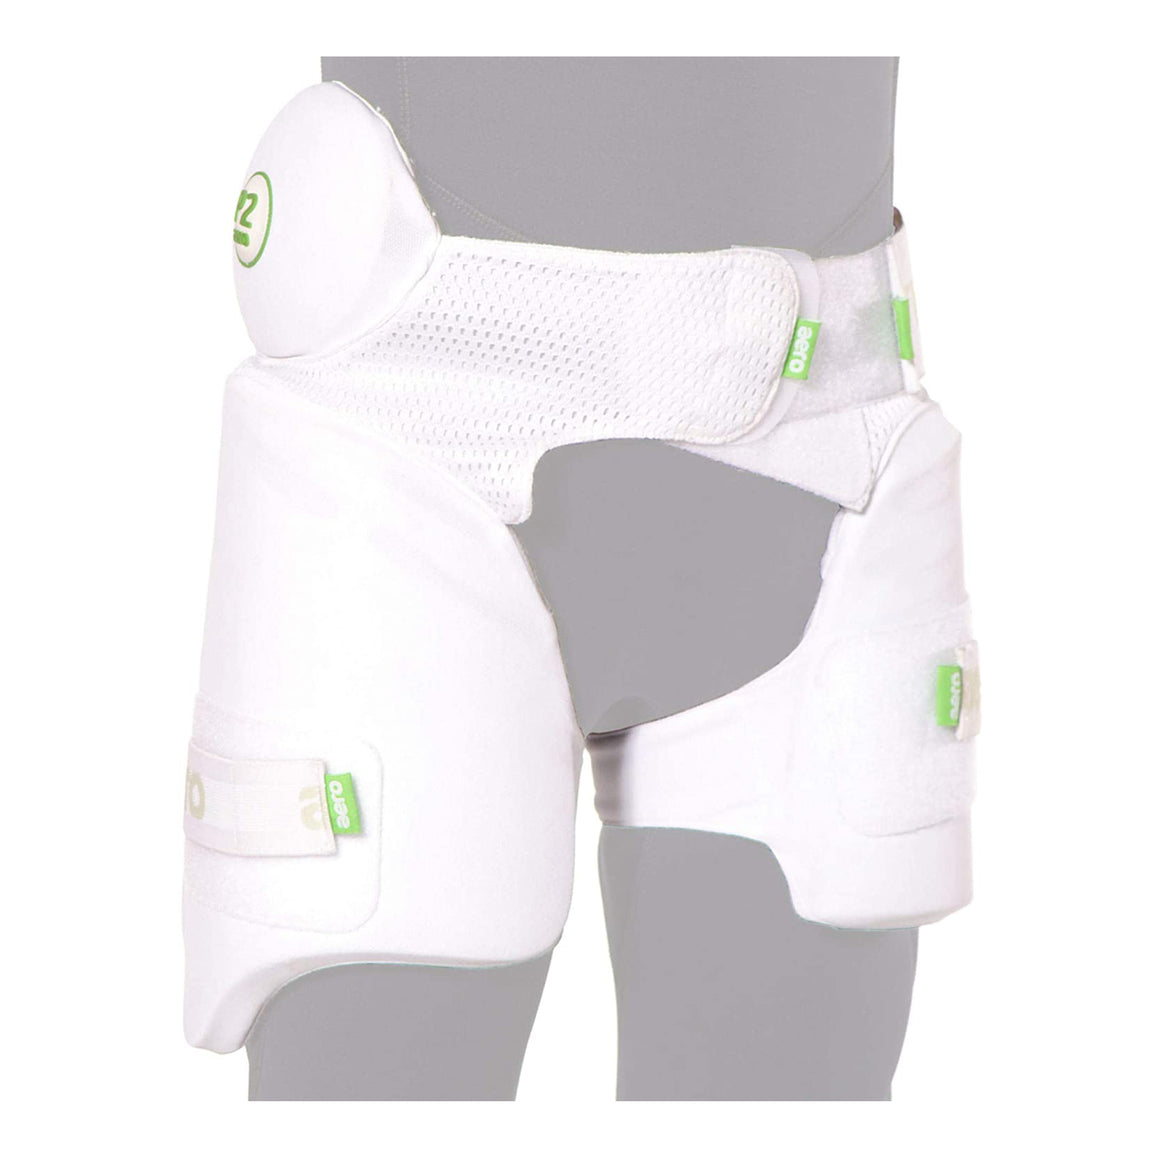 Aero P2 Strippers Cricket Lower Body Protectors L/H in White